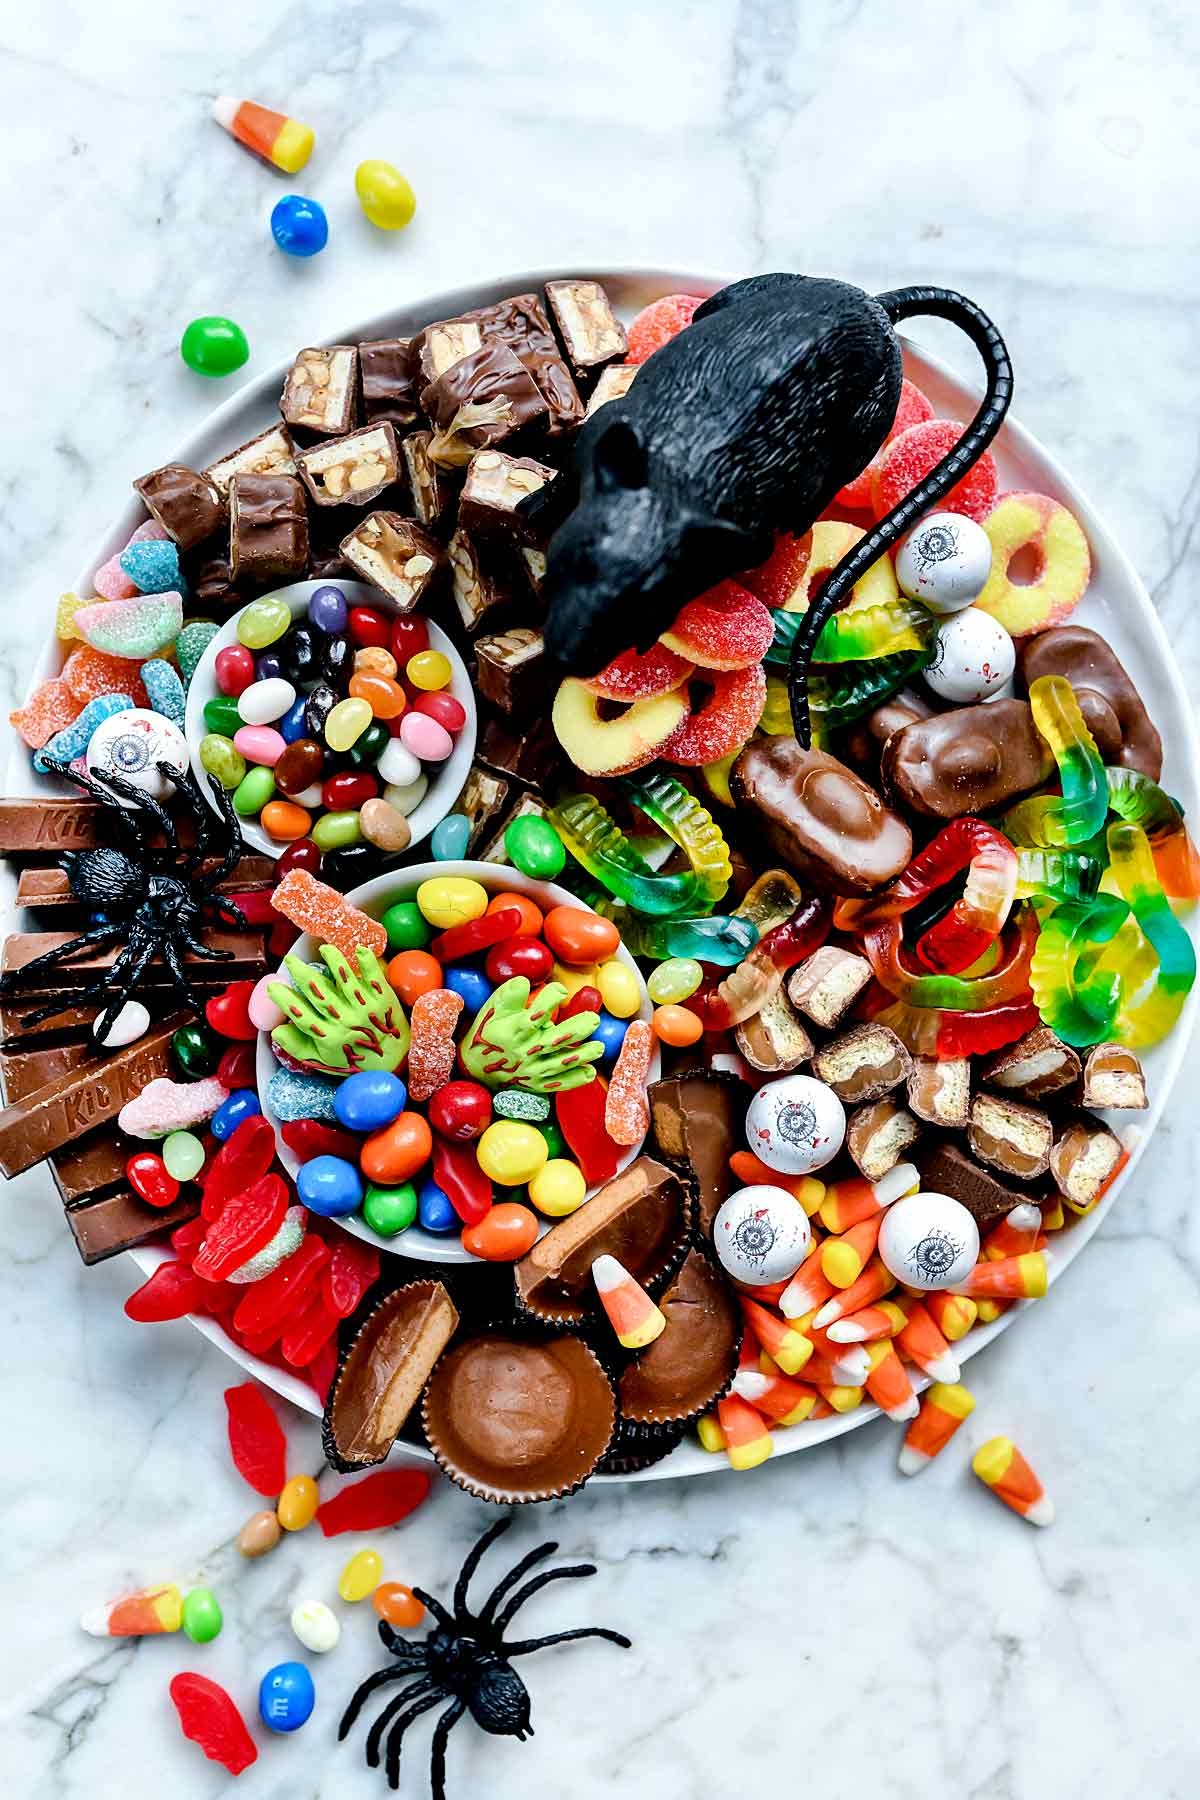 How To Make A Candy Charcuterie Board Foodiecrush Com